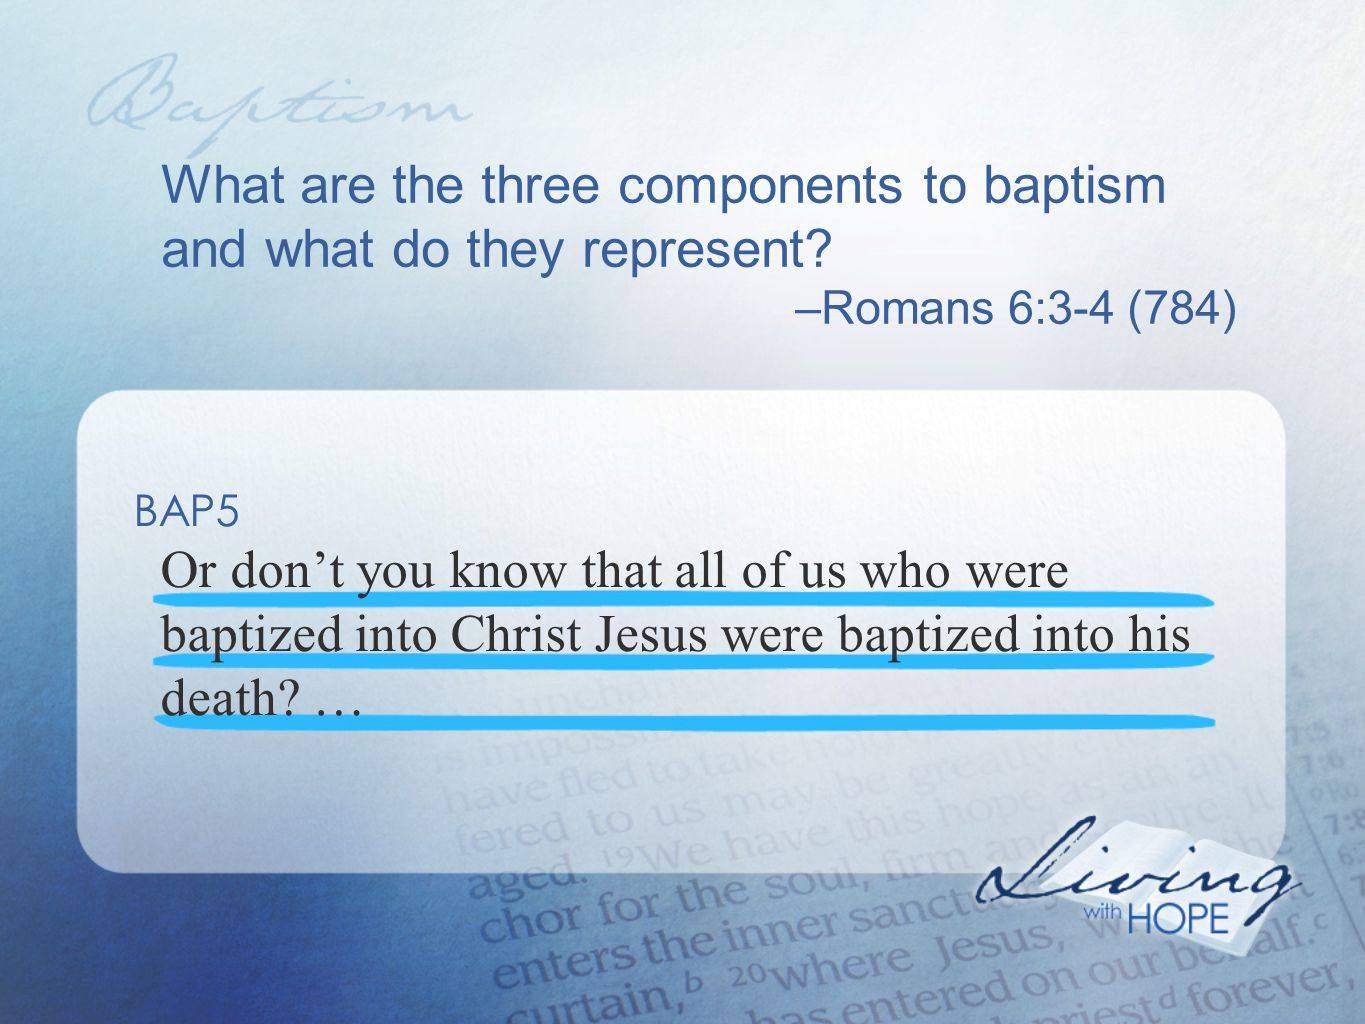 What are the three components to baptism and what do they represent.